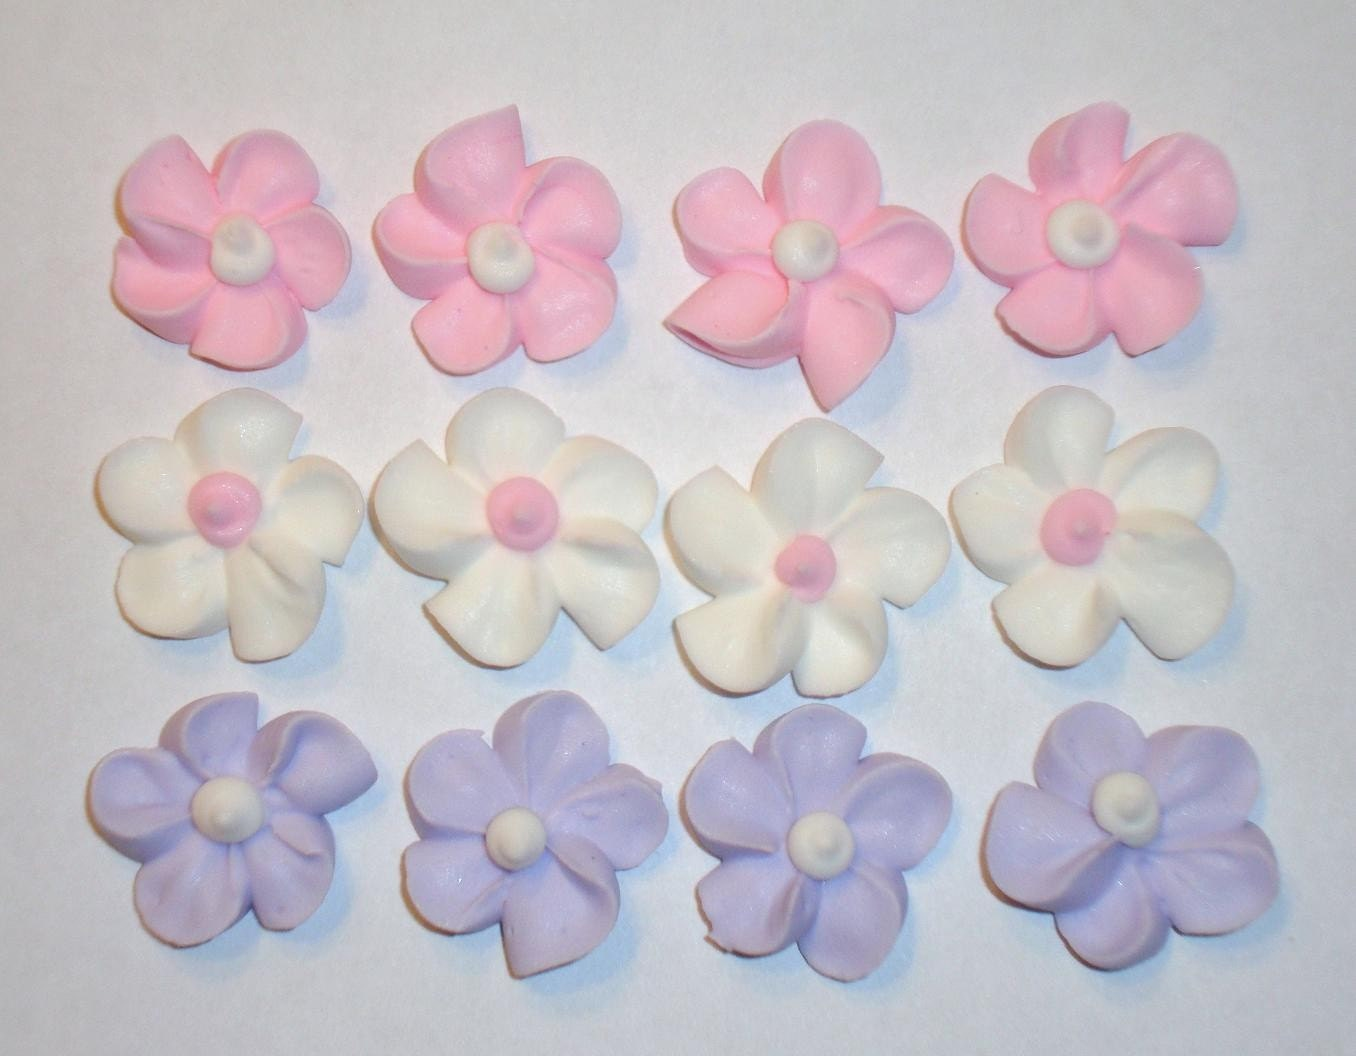 Cake Decorating Shiny Icing : LOT of 100 Royal Icing Flowers for Cake Decorating by mochasof